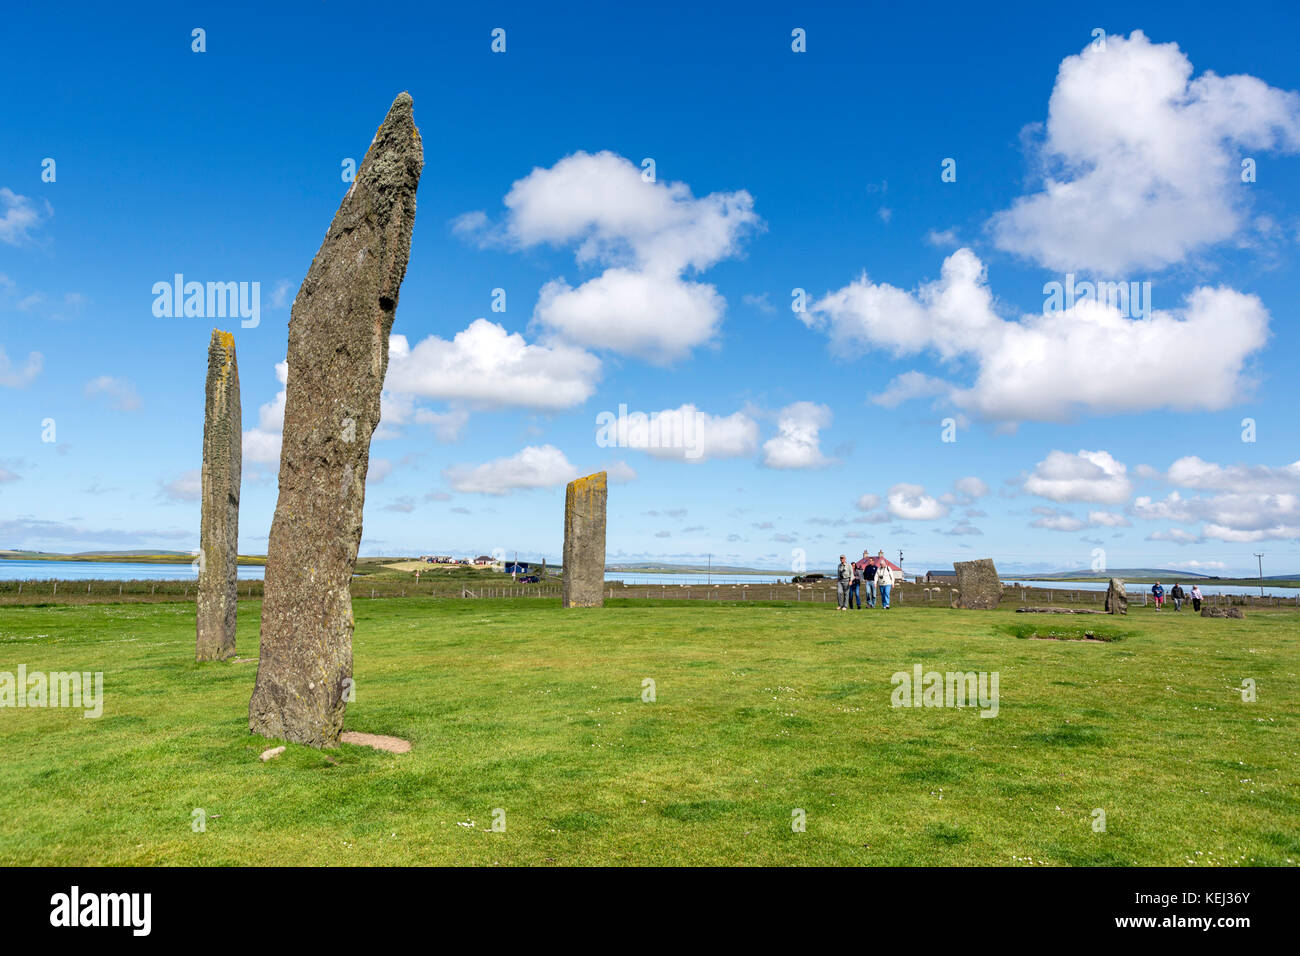 Tourists at the Standing Stones of Stennes, Mainland, Orkney, Scotland, UK. The stones are the remains of a Neolithic - Stock Image